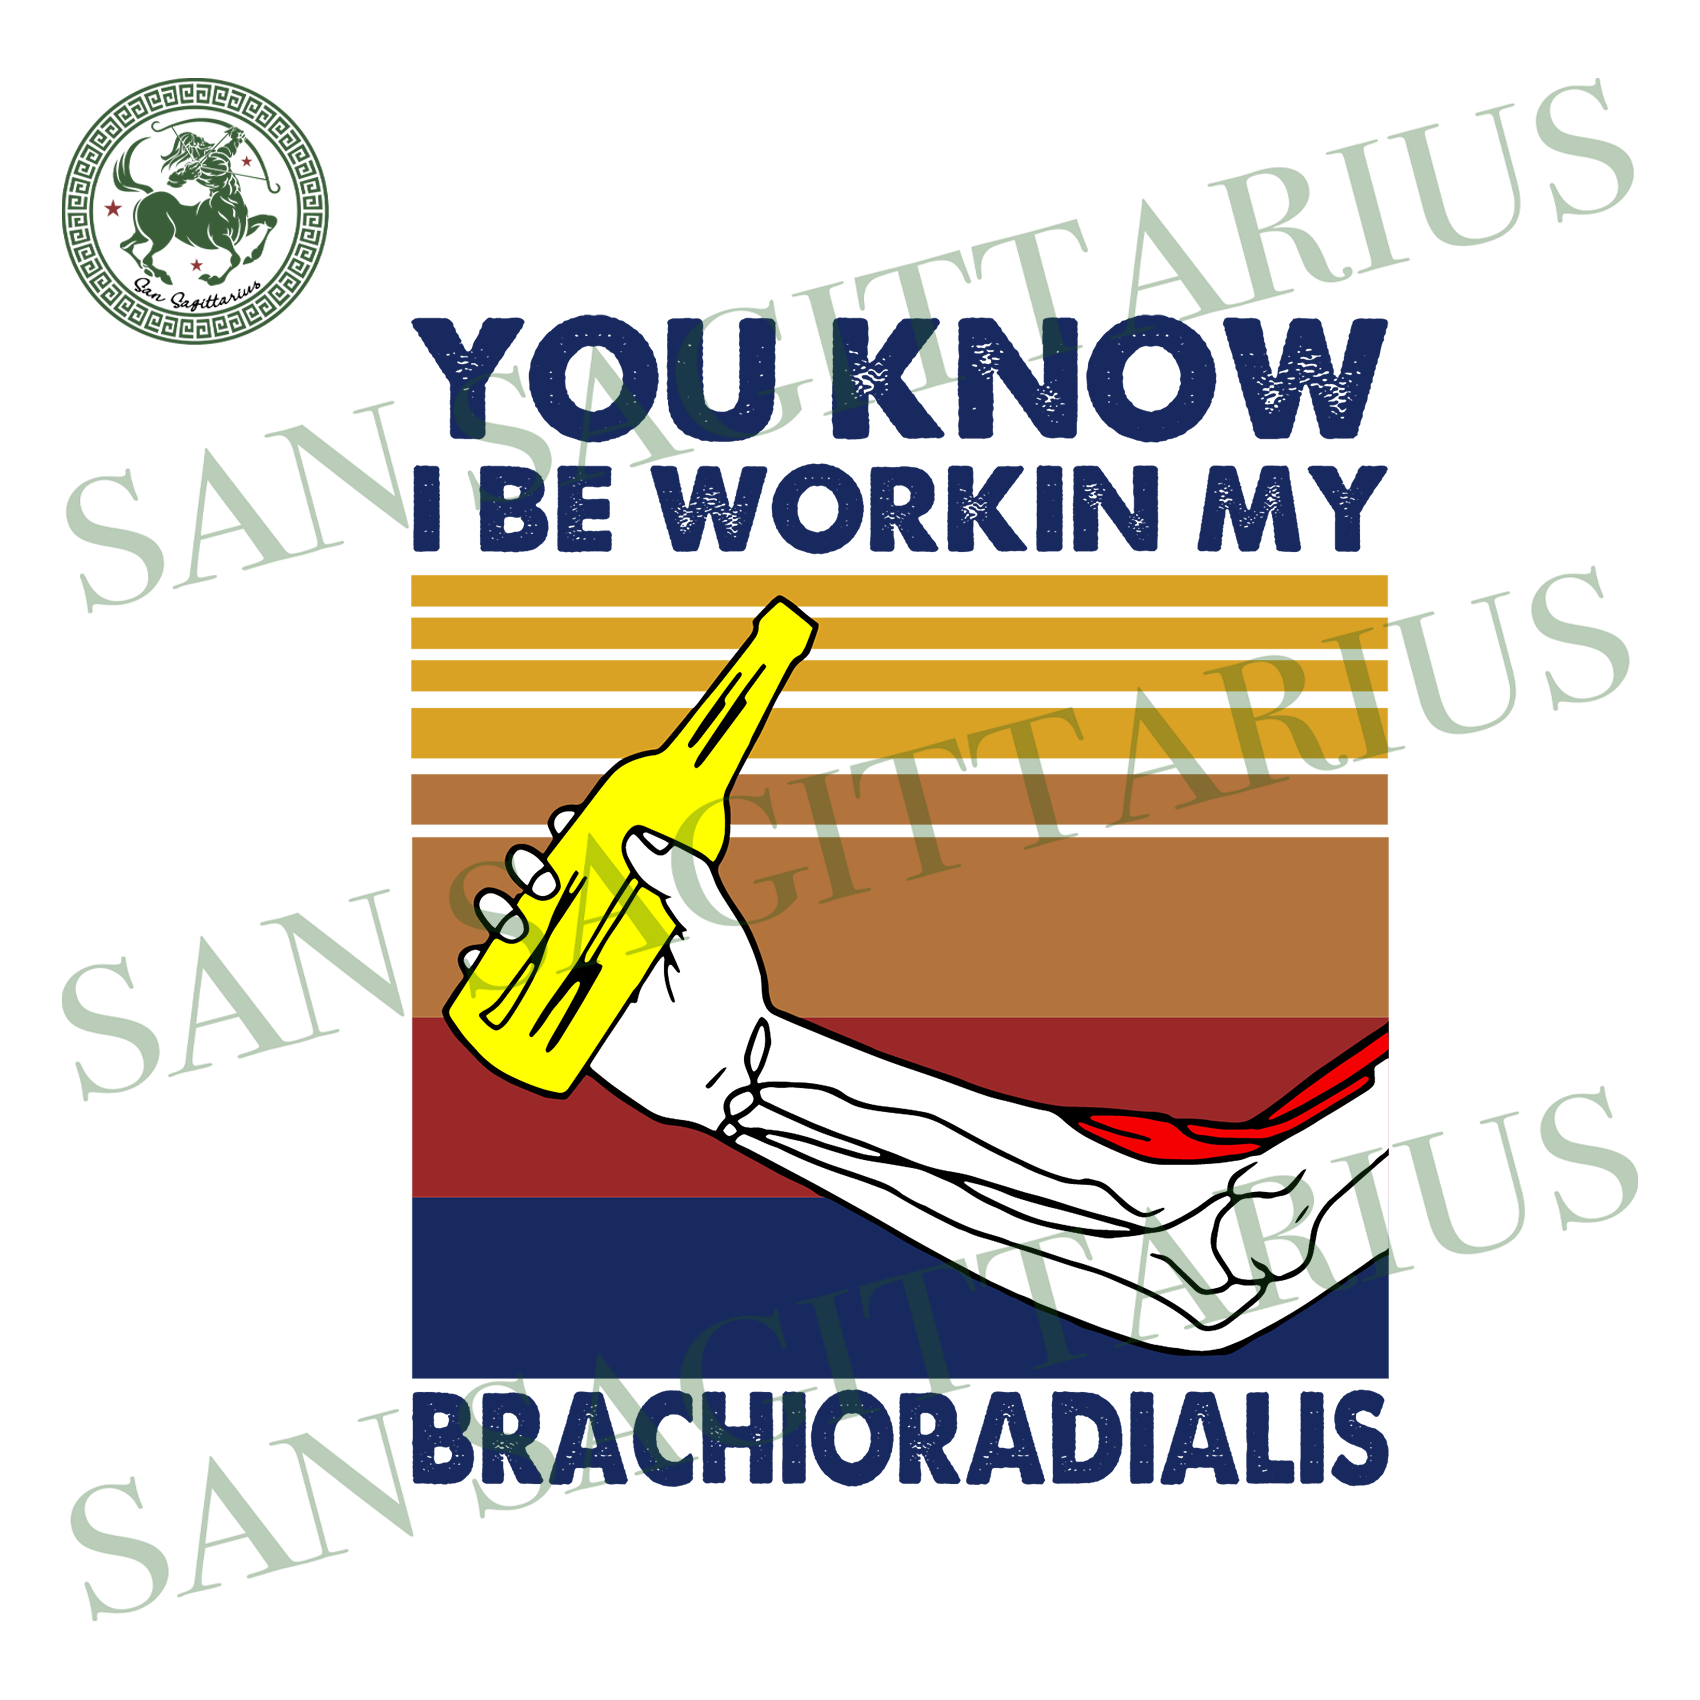 Vintage You Know I Be Workin My Brachioradialis Svg, Beer SVG, Drinking SVG, Brachioradialis SVG,Brachioradialis Shirt,Funny Drinking Svg,Lover Beer Svg